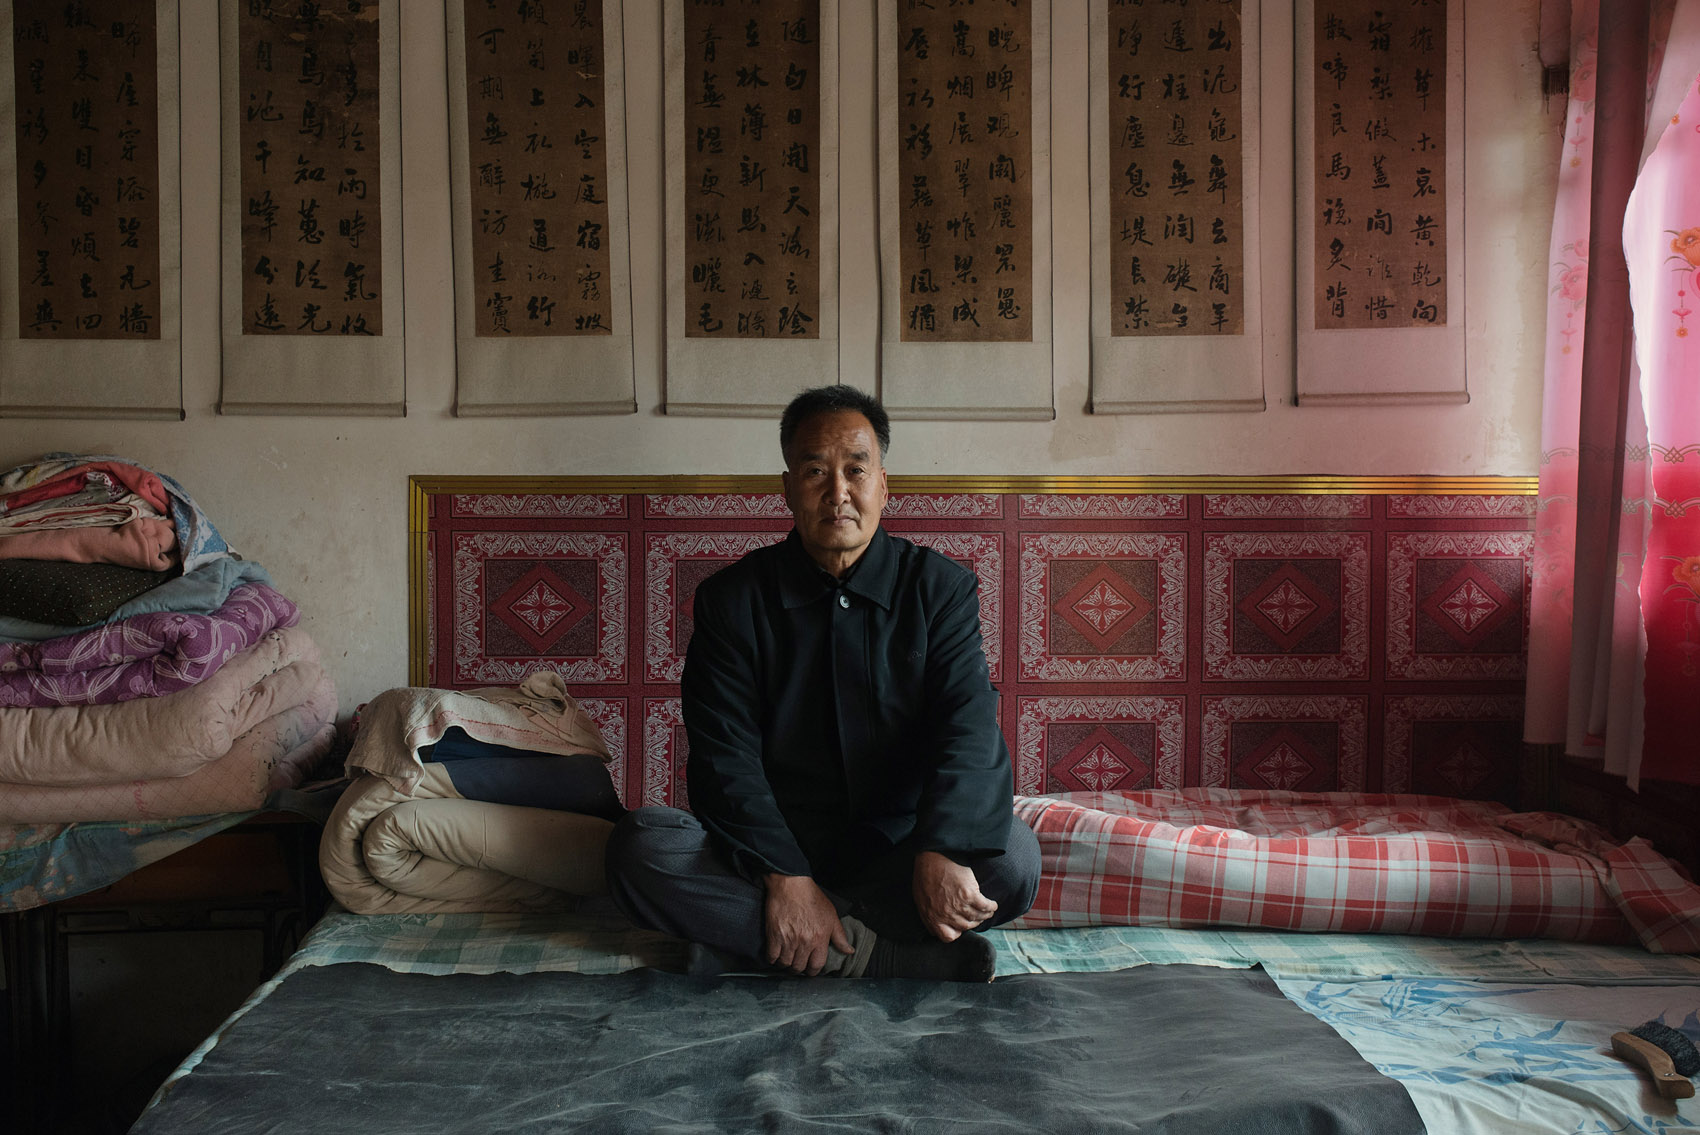 Changjiahe village  65 years old,Niu Wenxuan, Besides farming, Niu has a passion for calligraphy and he occasionally does restoration of old scrolls. The scrolls hanging above his kang date back from the Qing Dynasty.